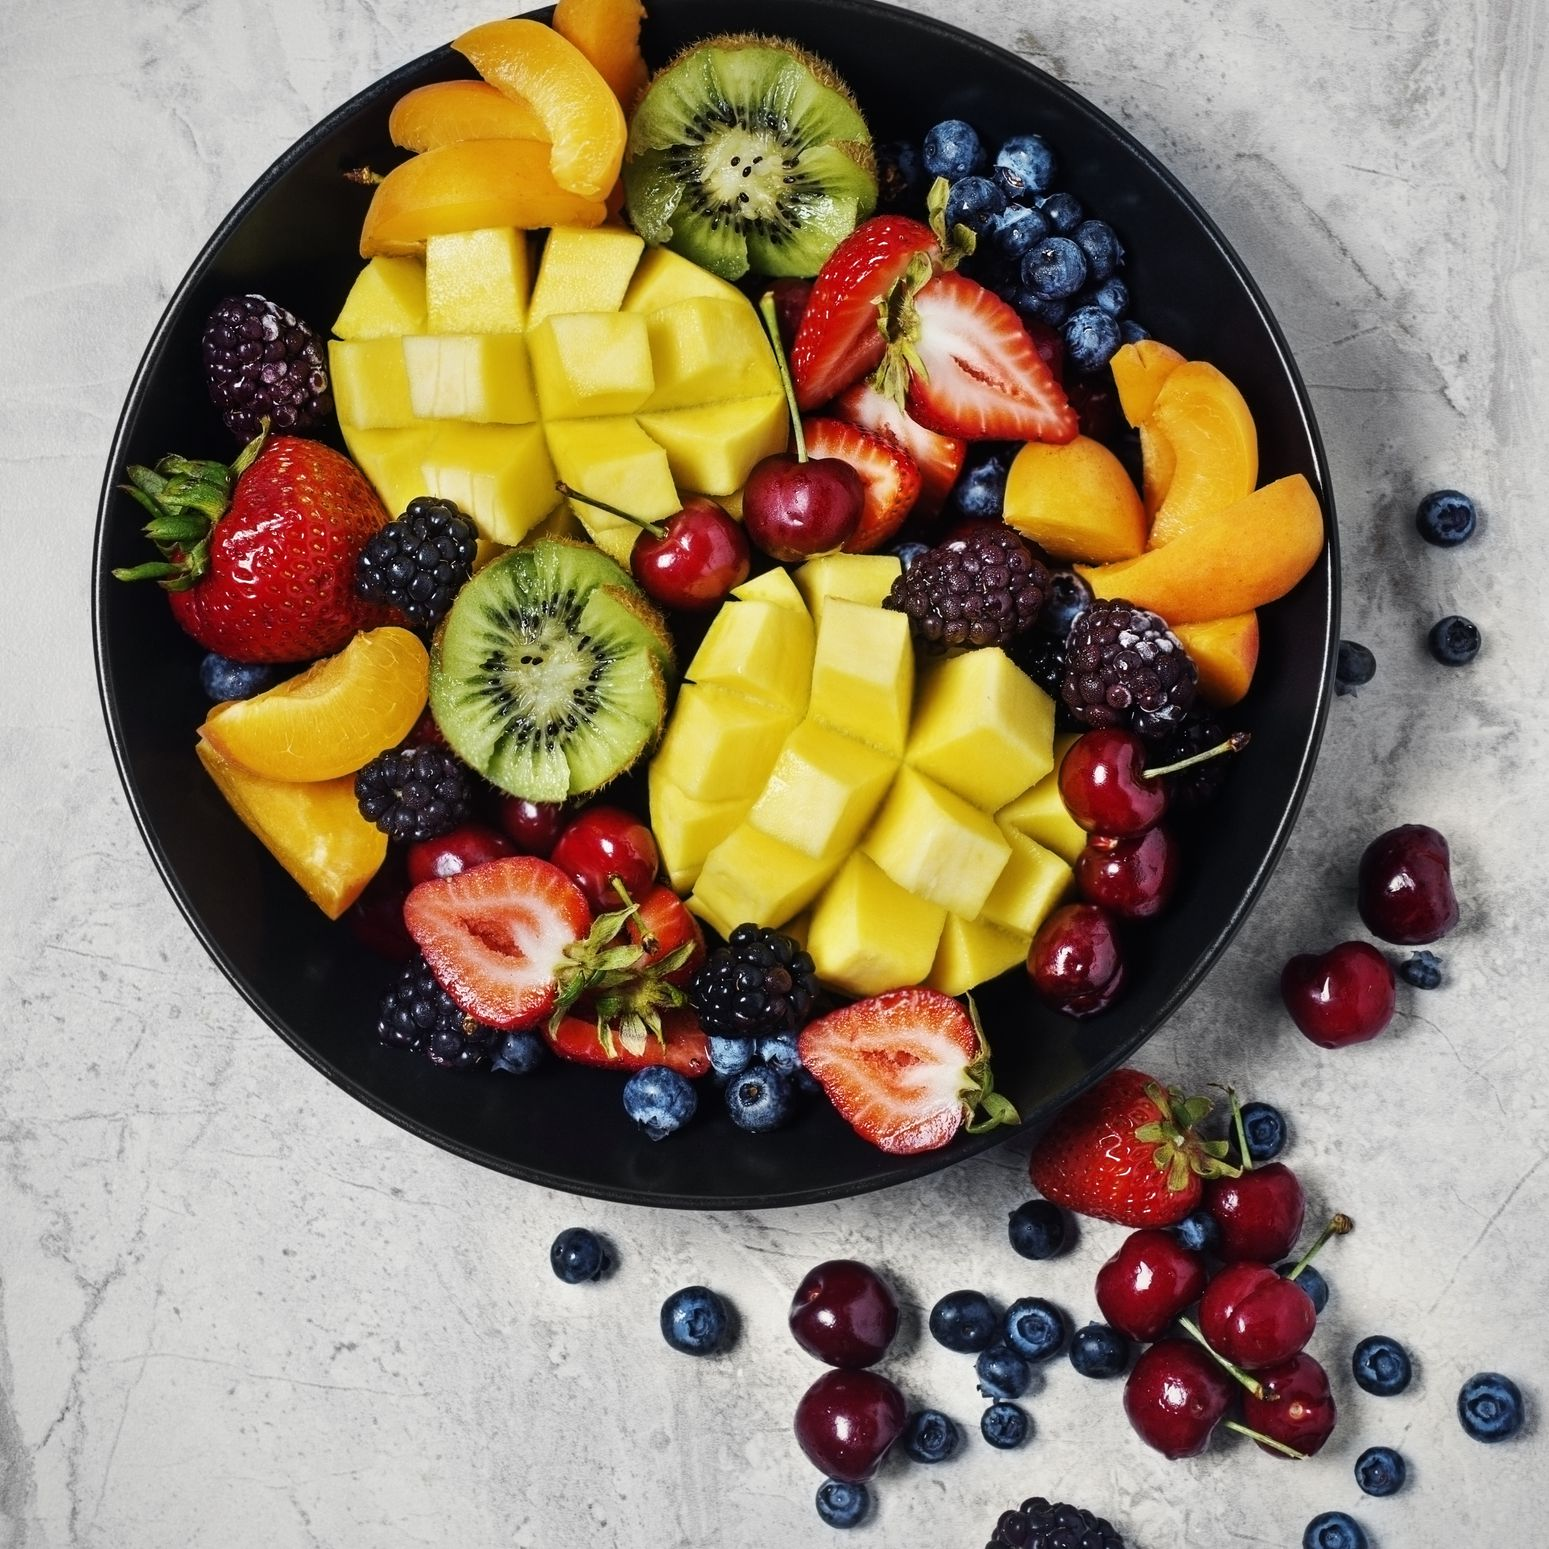 The 9 Worst Fruits to Eat